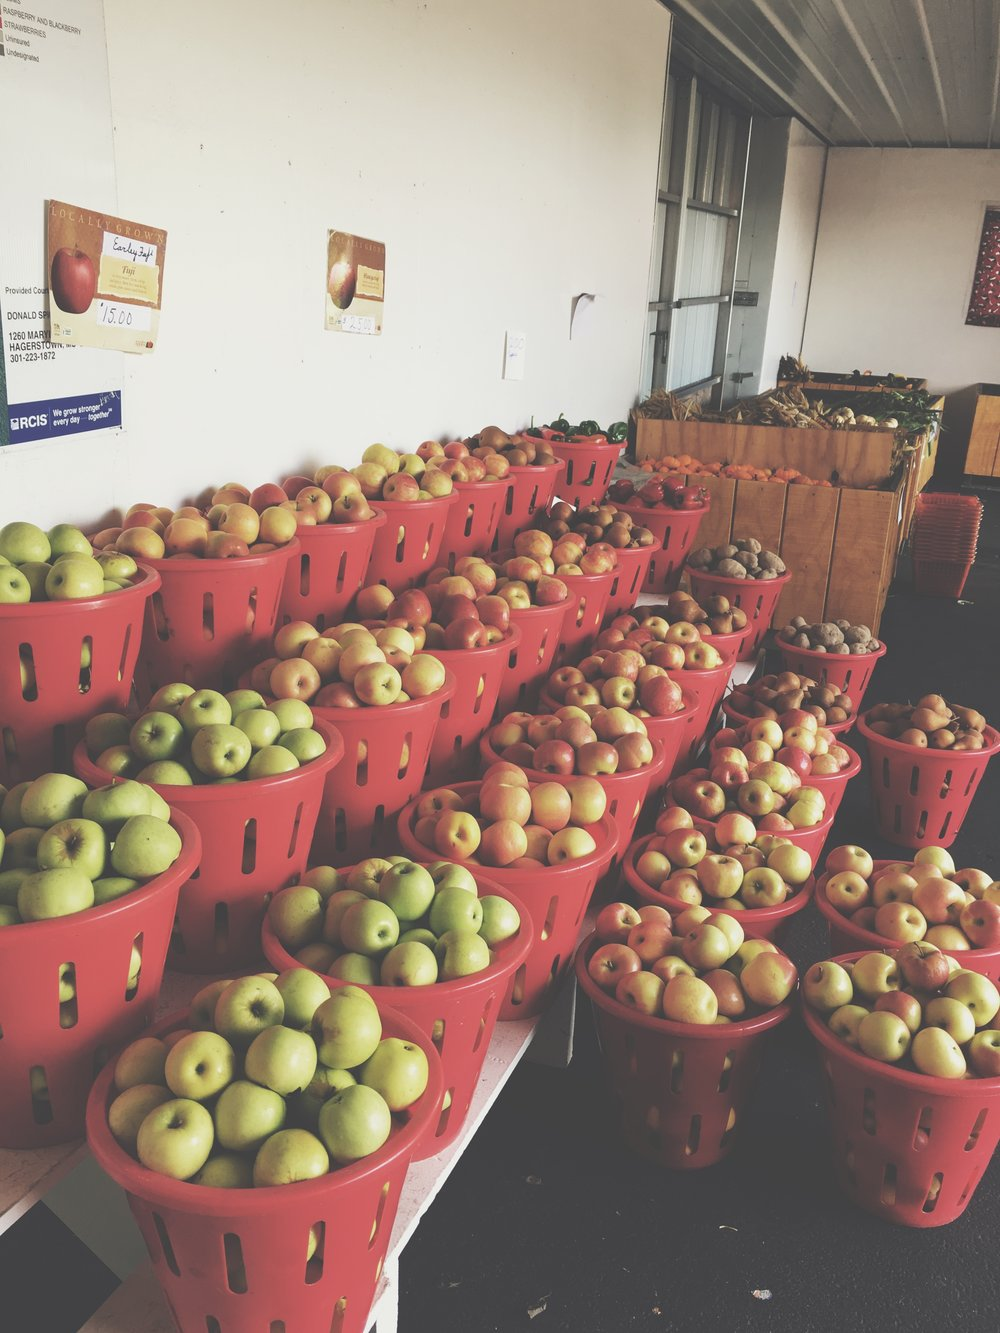 - We also have plenty of apples